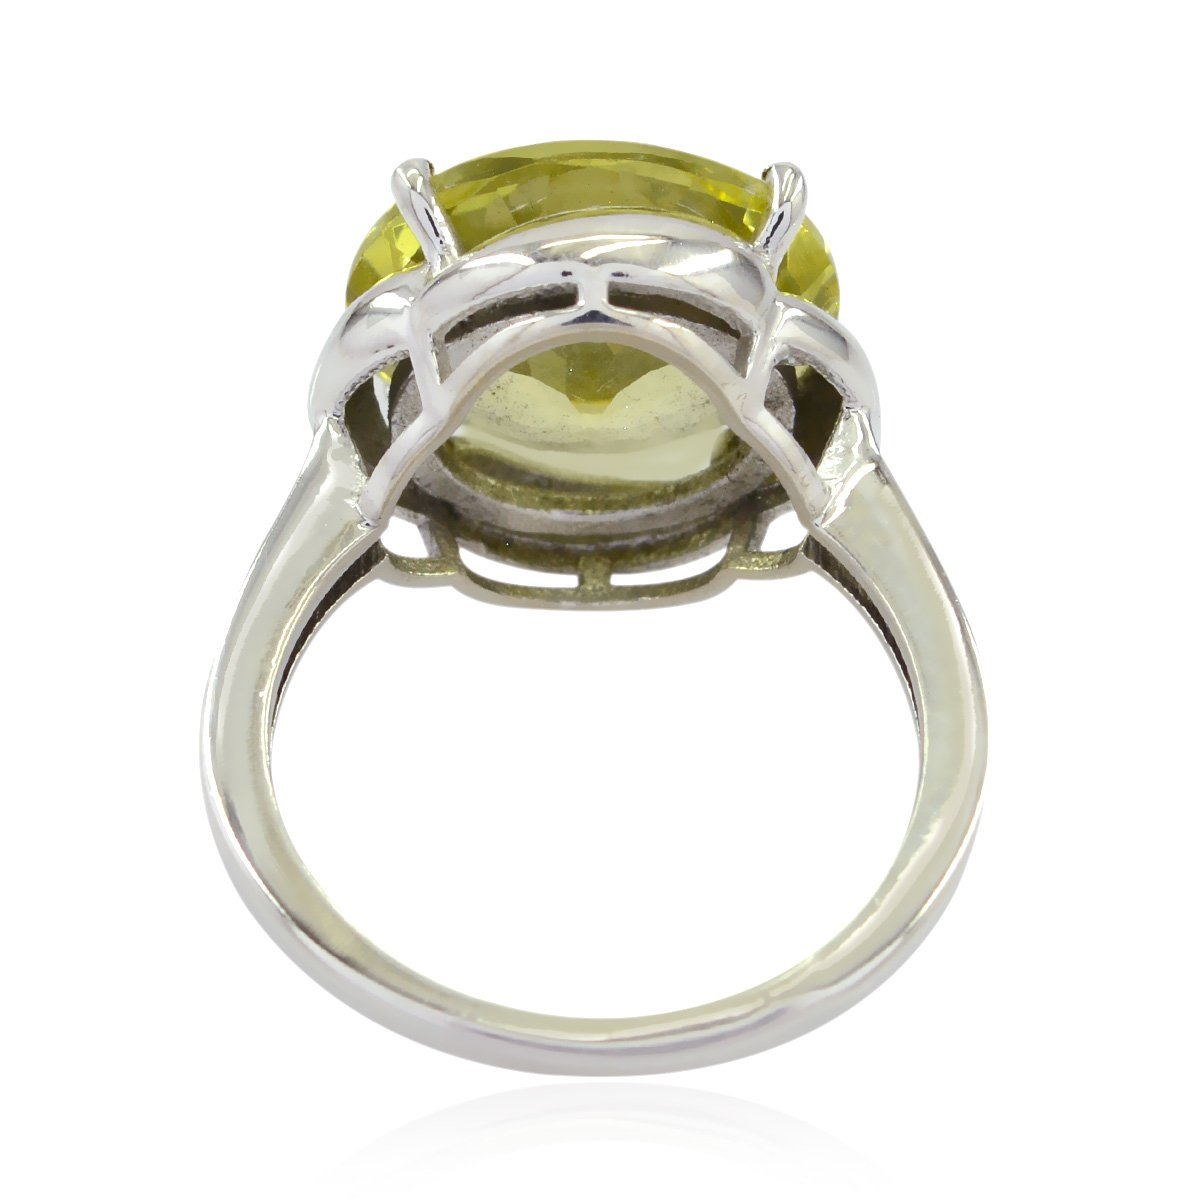 Supply Jewelry Greatest Seller Gift for Mother Rings Genuine Gems Round Faceted Lemon Quartz Ring 925 Silver Yellow Lemon Quartz Genuine Gems Ring